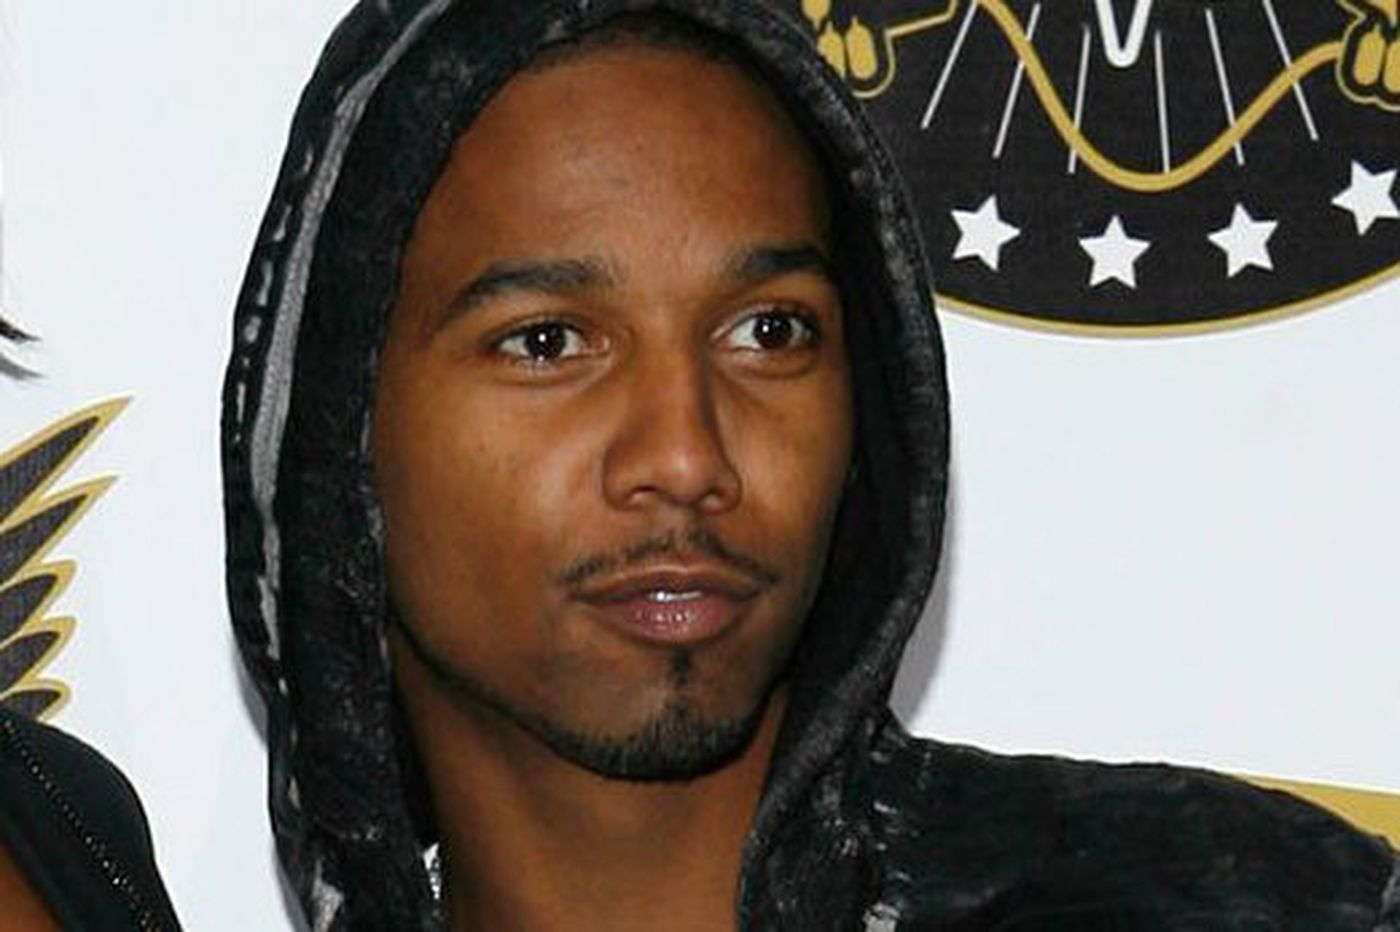 Rapper Juelz Santana ordered to get anger management assessment while on house arrest for gun charges